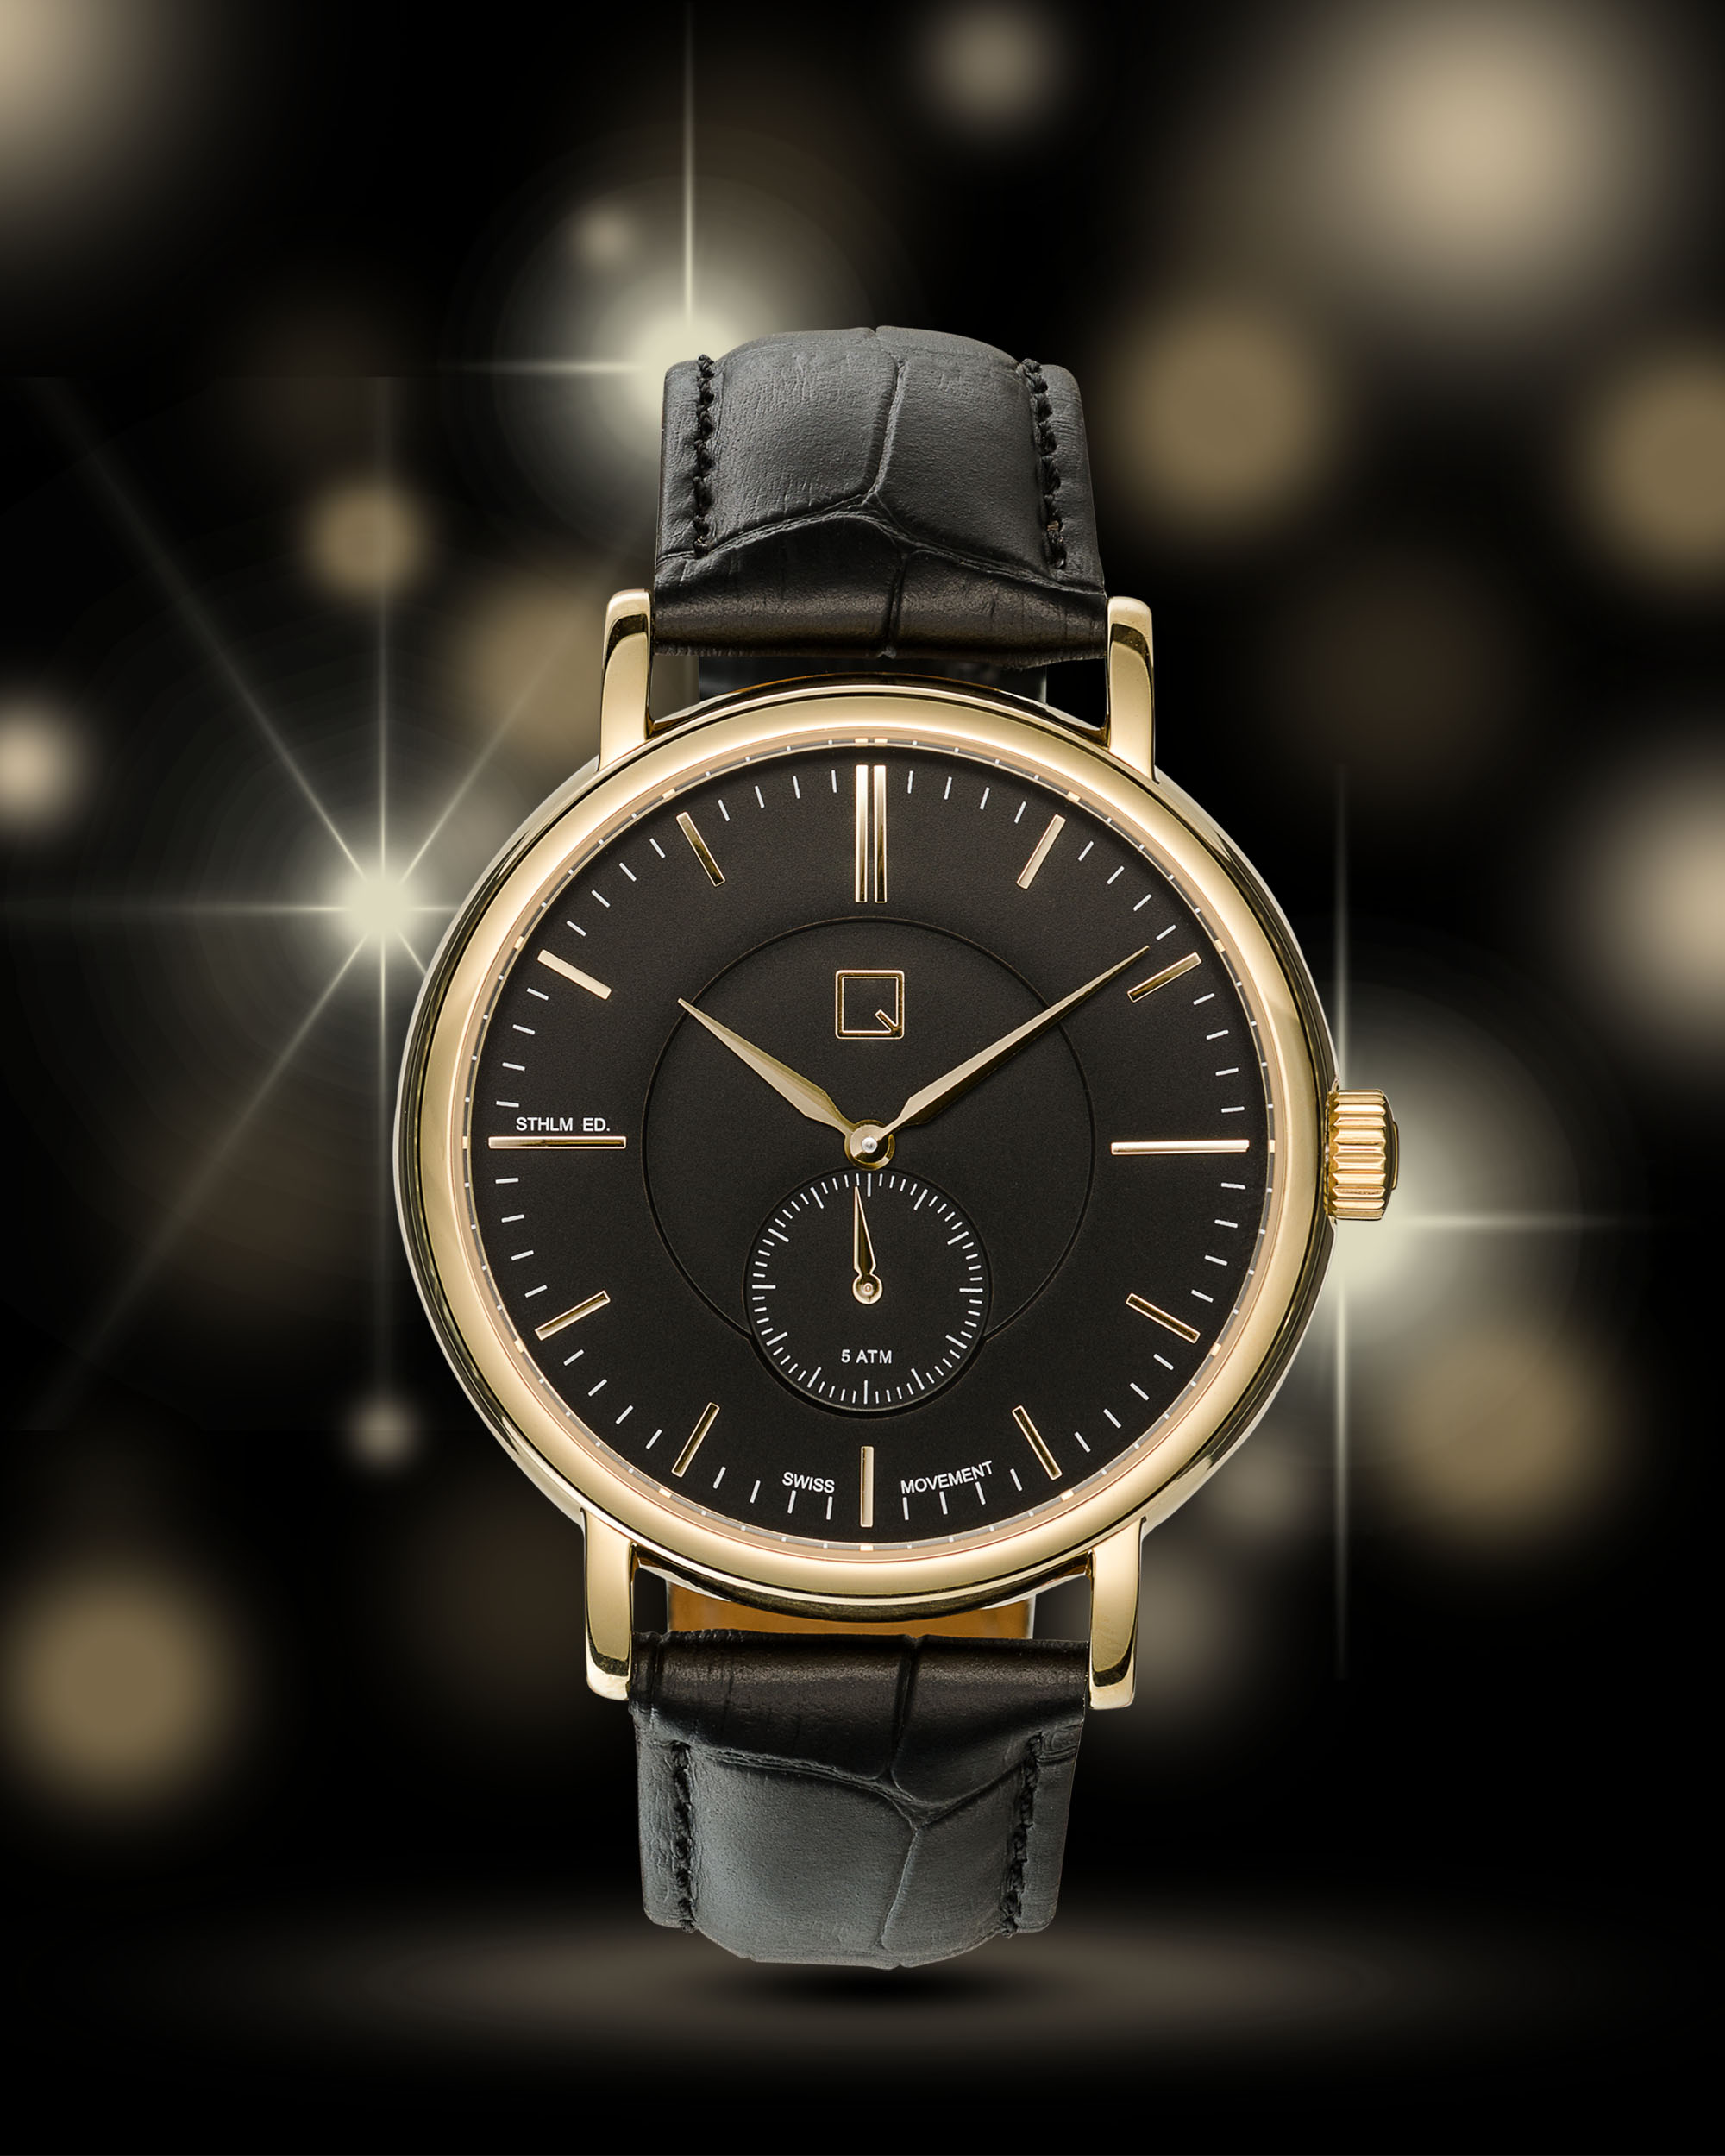 Ian Knaggs Commercial Watch Photographer - Black Watch with Gold Stars